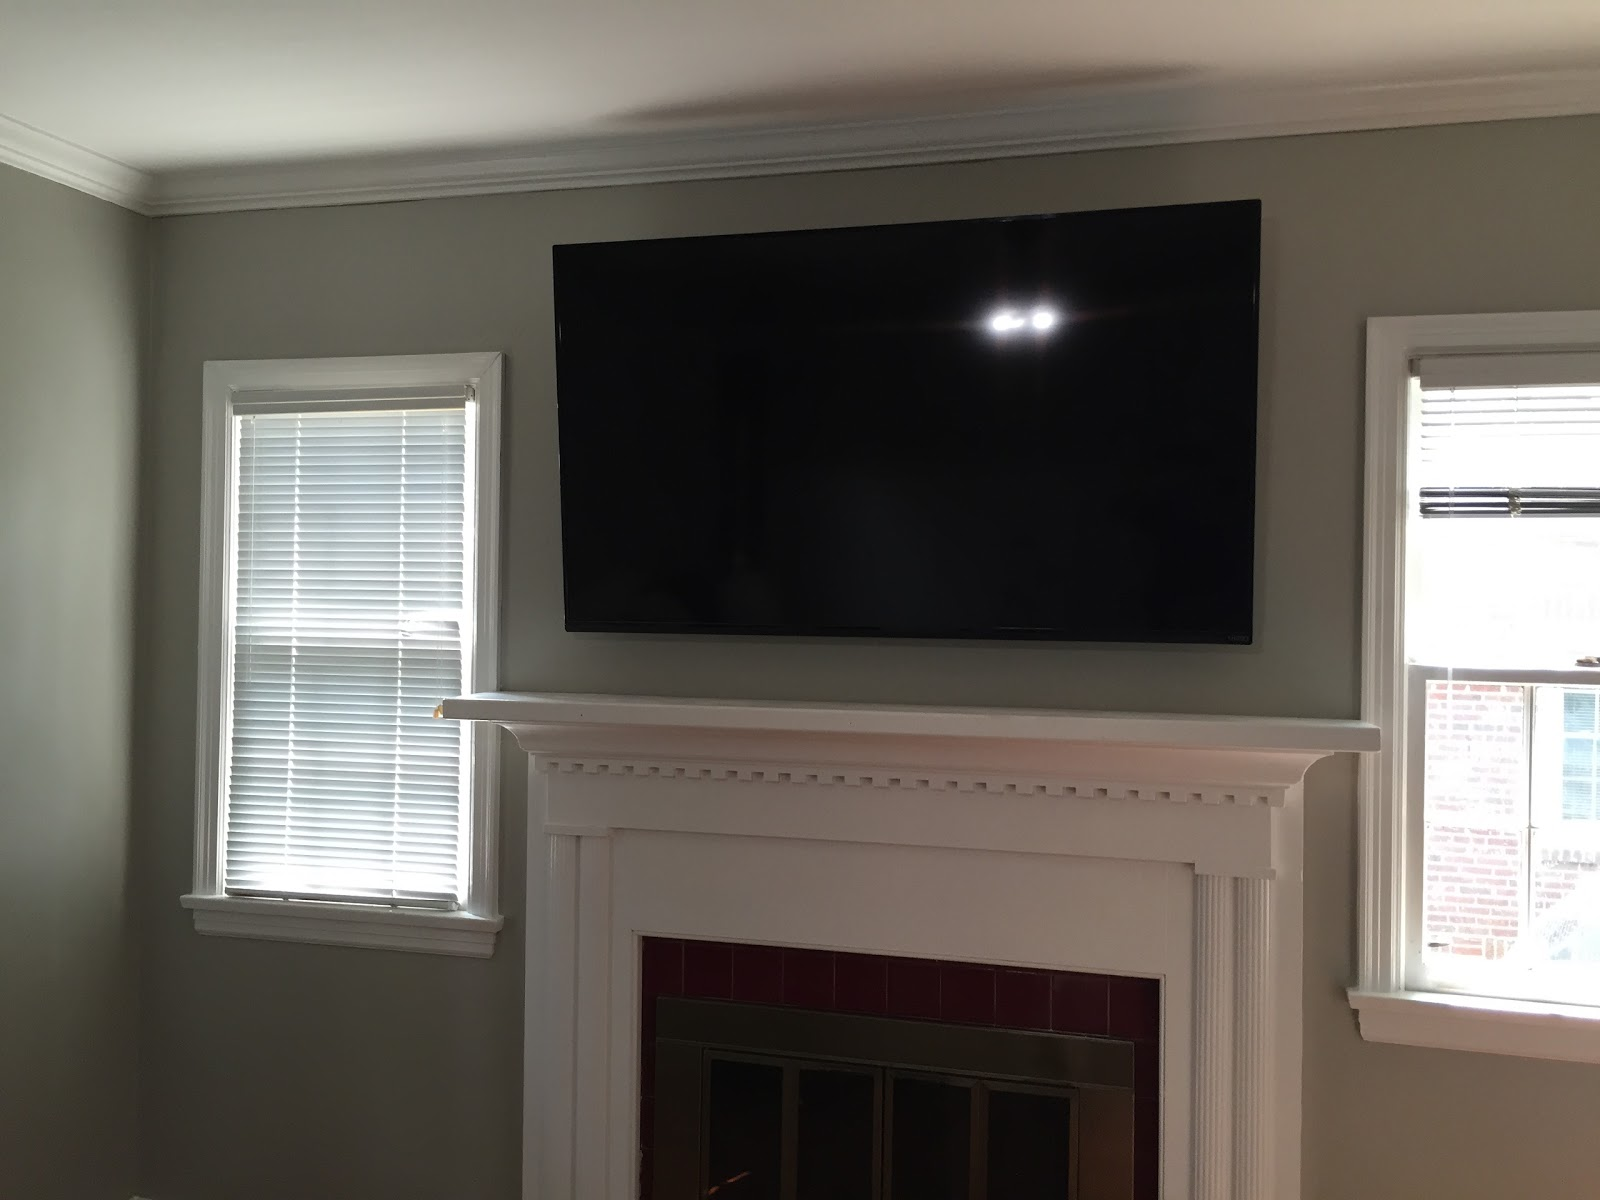 mount tv over fireplace mounting a tv above a fireplace 3 mount